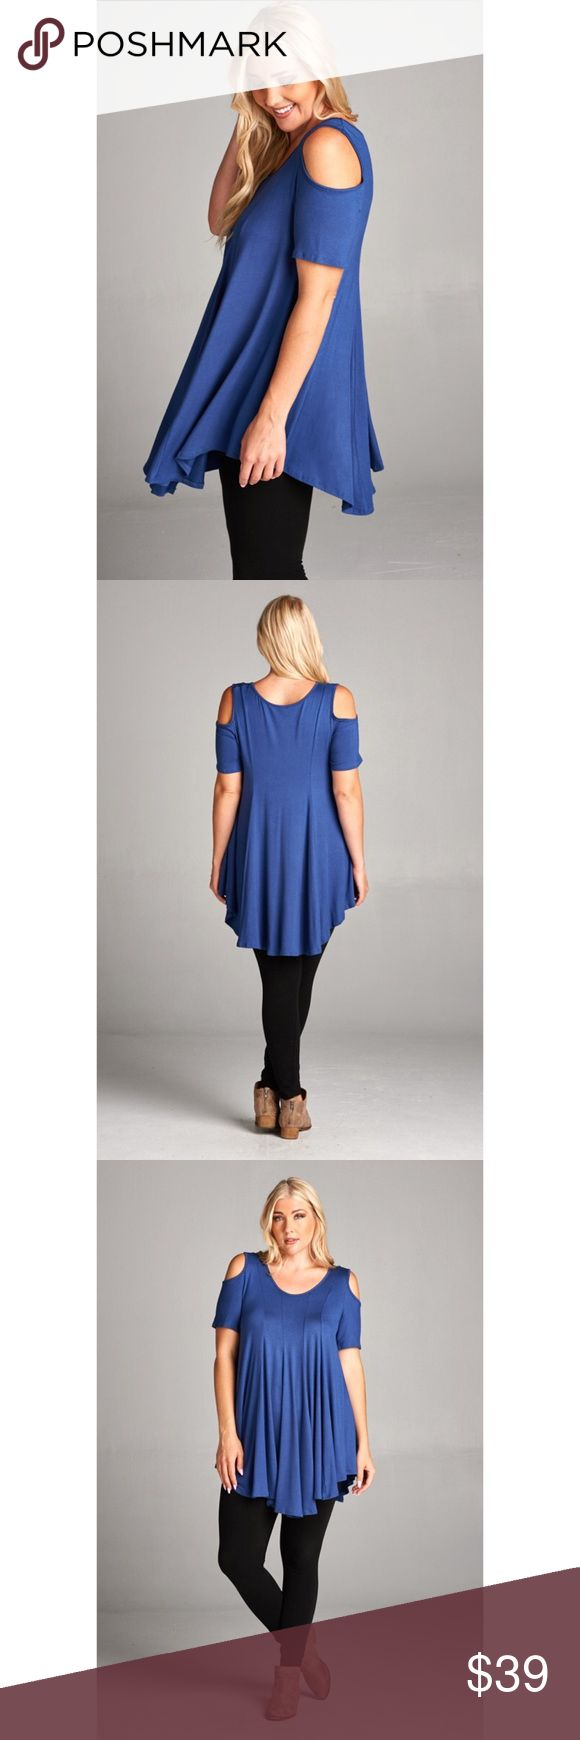 Just In- Plus Size Open Shoulder Tunic Top Just In for spring/summer! Chic and comfortable plus size cold shoulder cutout tunic top. Gorgeous royal blue color. Pair with leggings or skinnies. 95% soft and smooth Rayon, 5% Spandex. Made in the U.S.A. Available in sizes 1XL, 2XL, and 3XL. Brand new. Price is firm unless bundled. тнαик уσυ  Tops Tunics